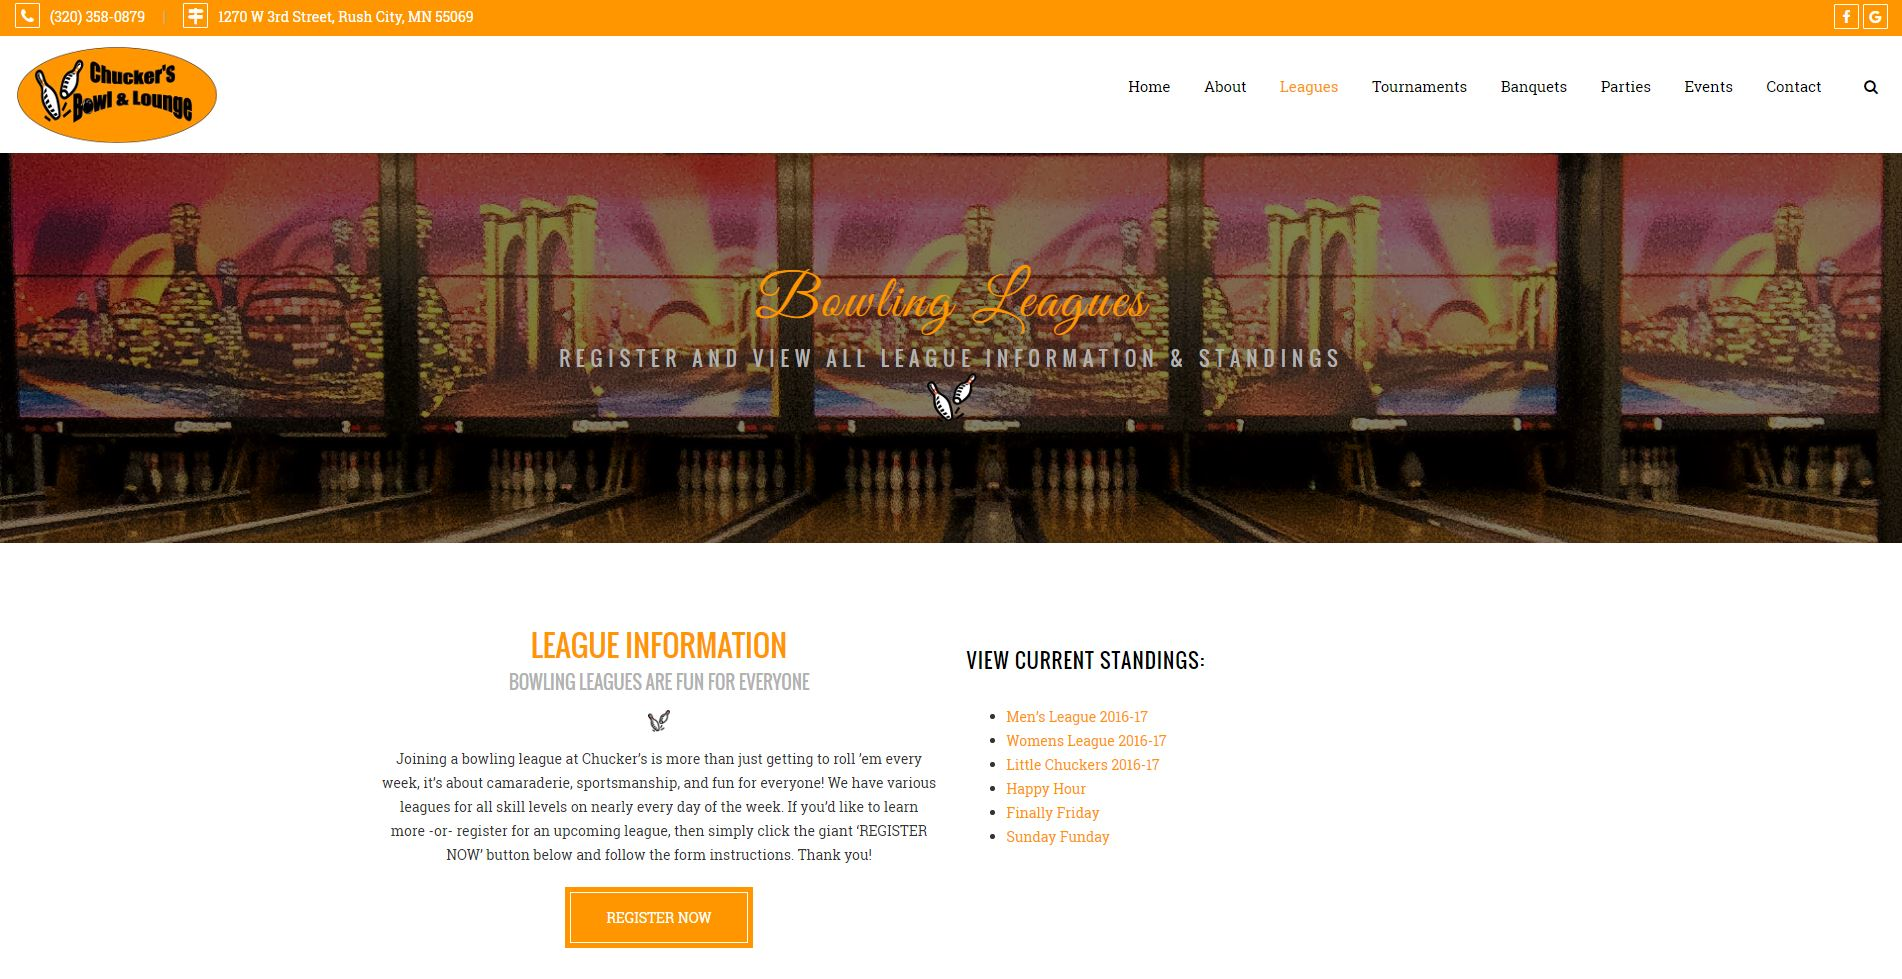 Bowling Entertainment Website Design cbl3